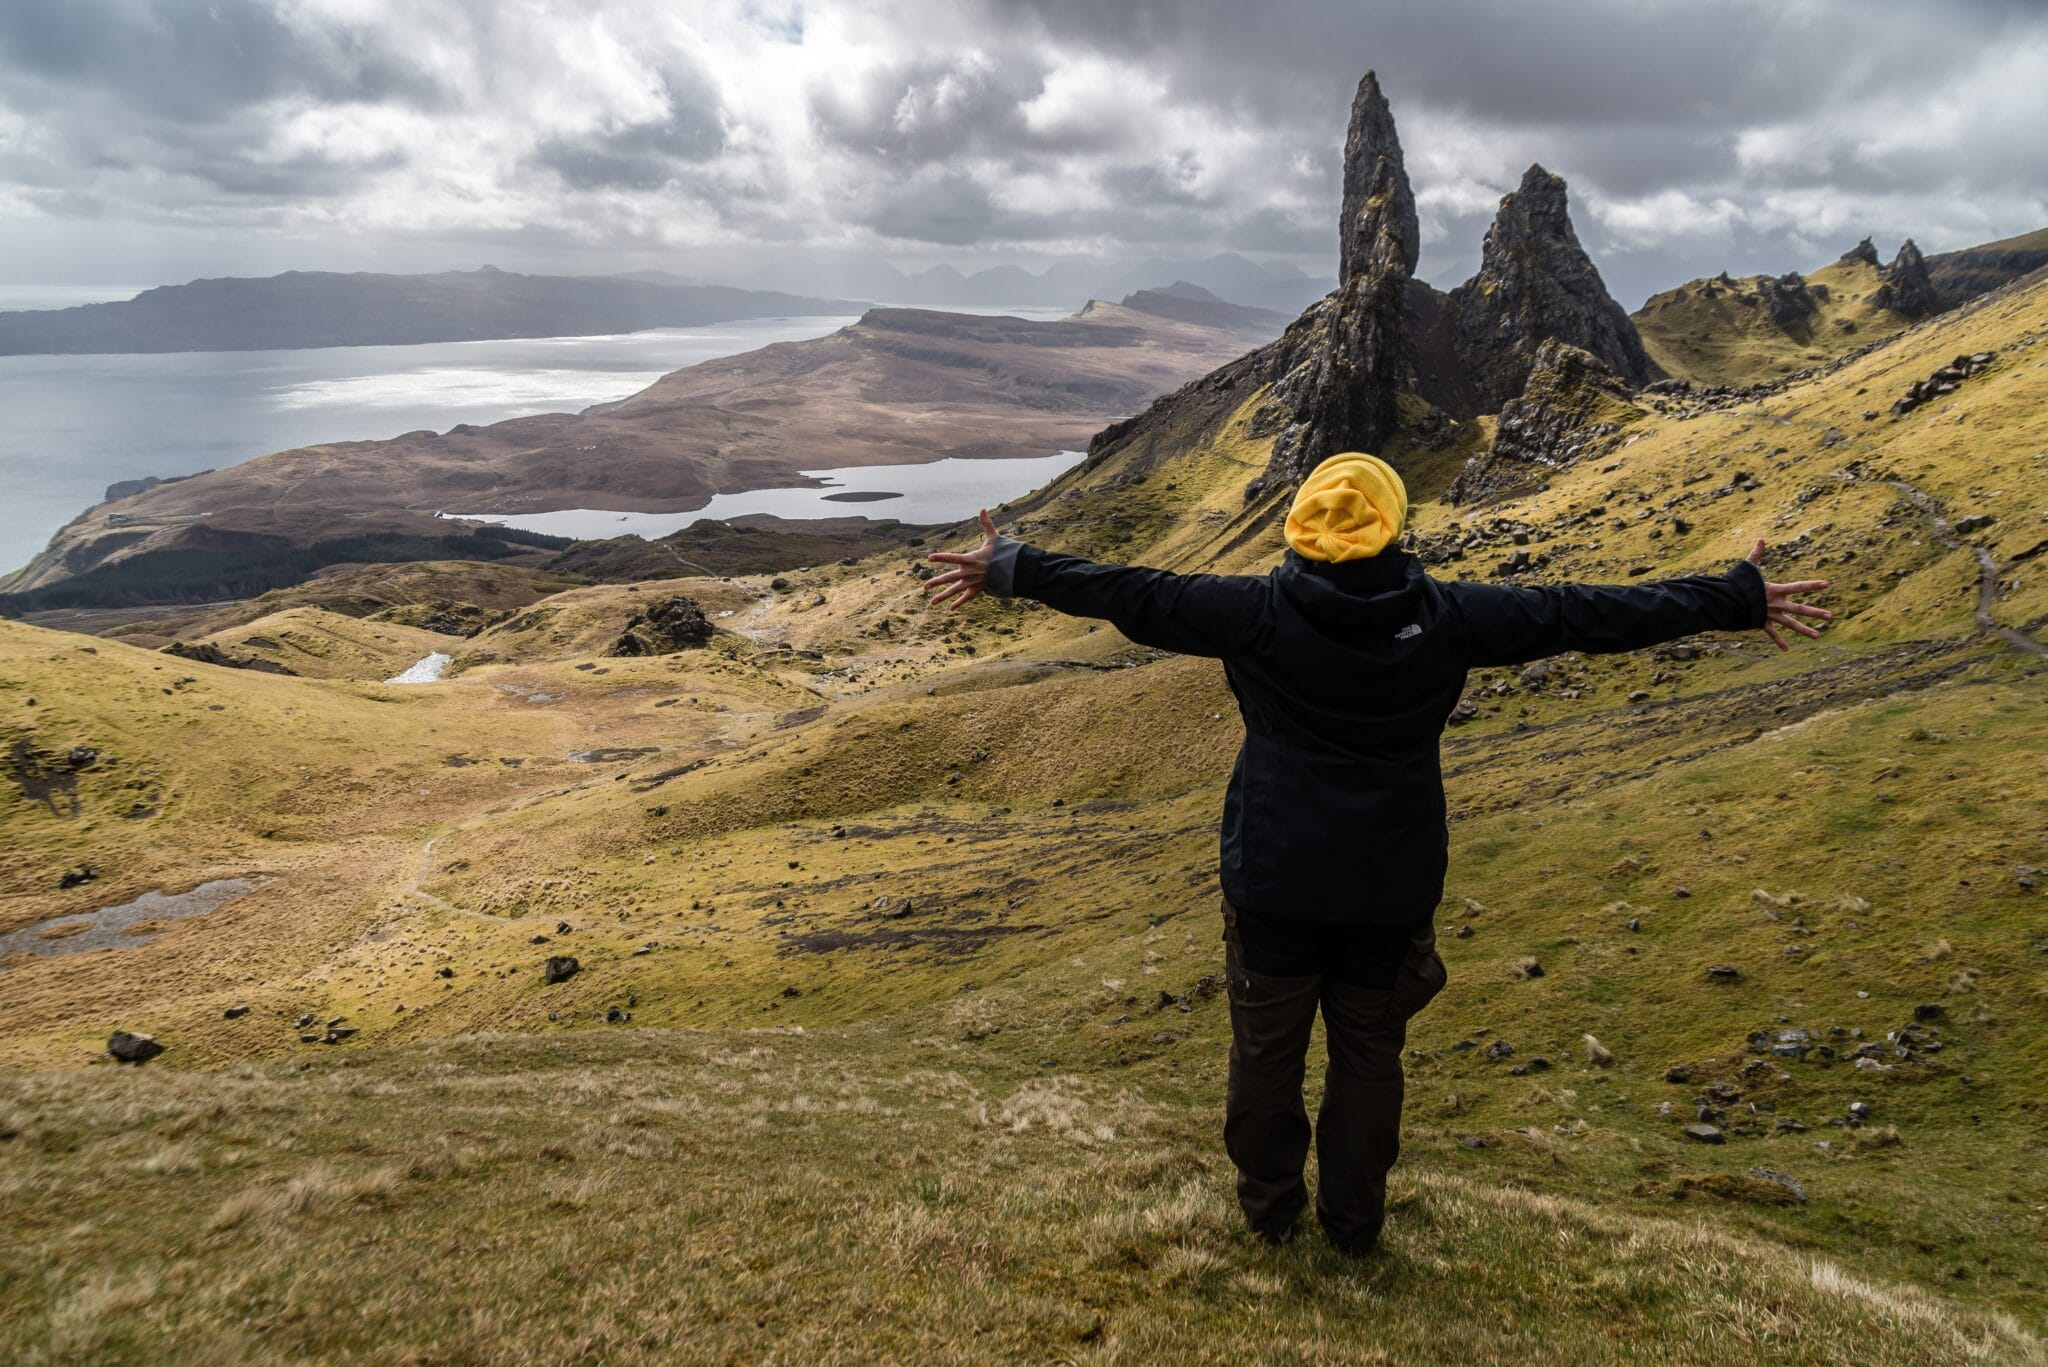 A woam has spread her hands in front of Scottish scenery. Represents and idea of what to do .